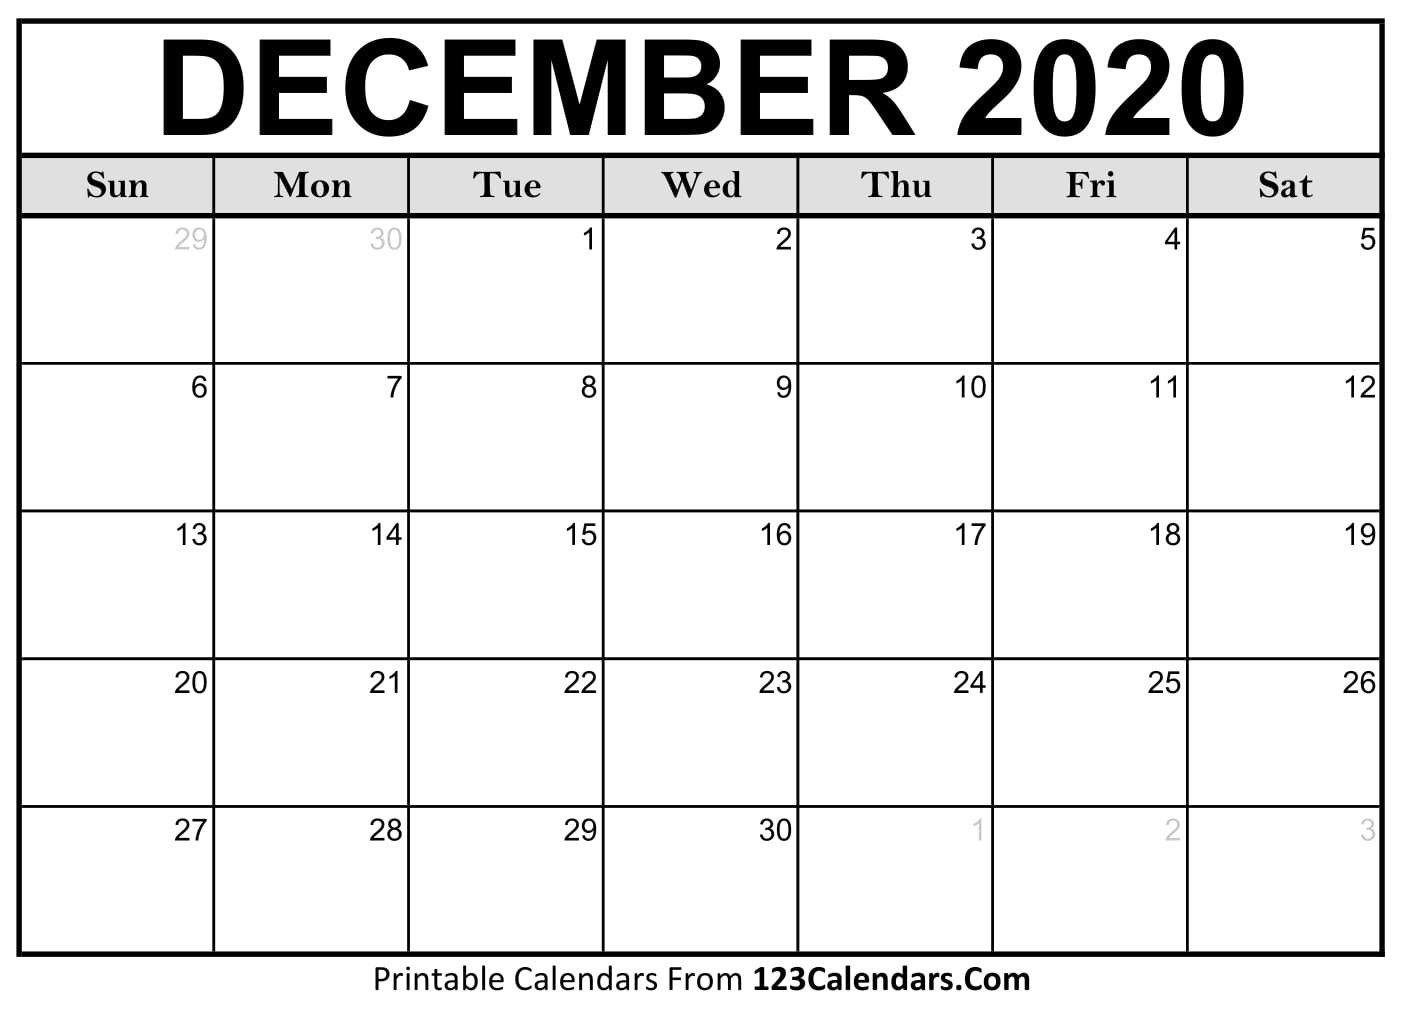 Dec 2020 Blank Calendars To Print Without Downloading  Free Printable Calendar Without Download